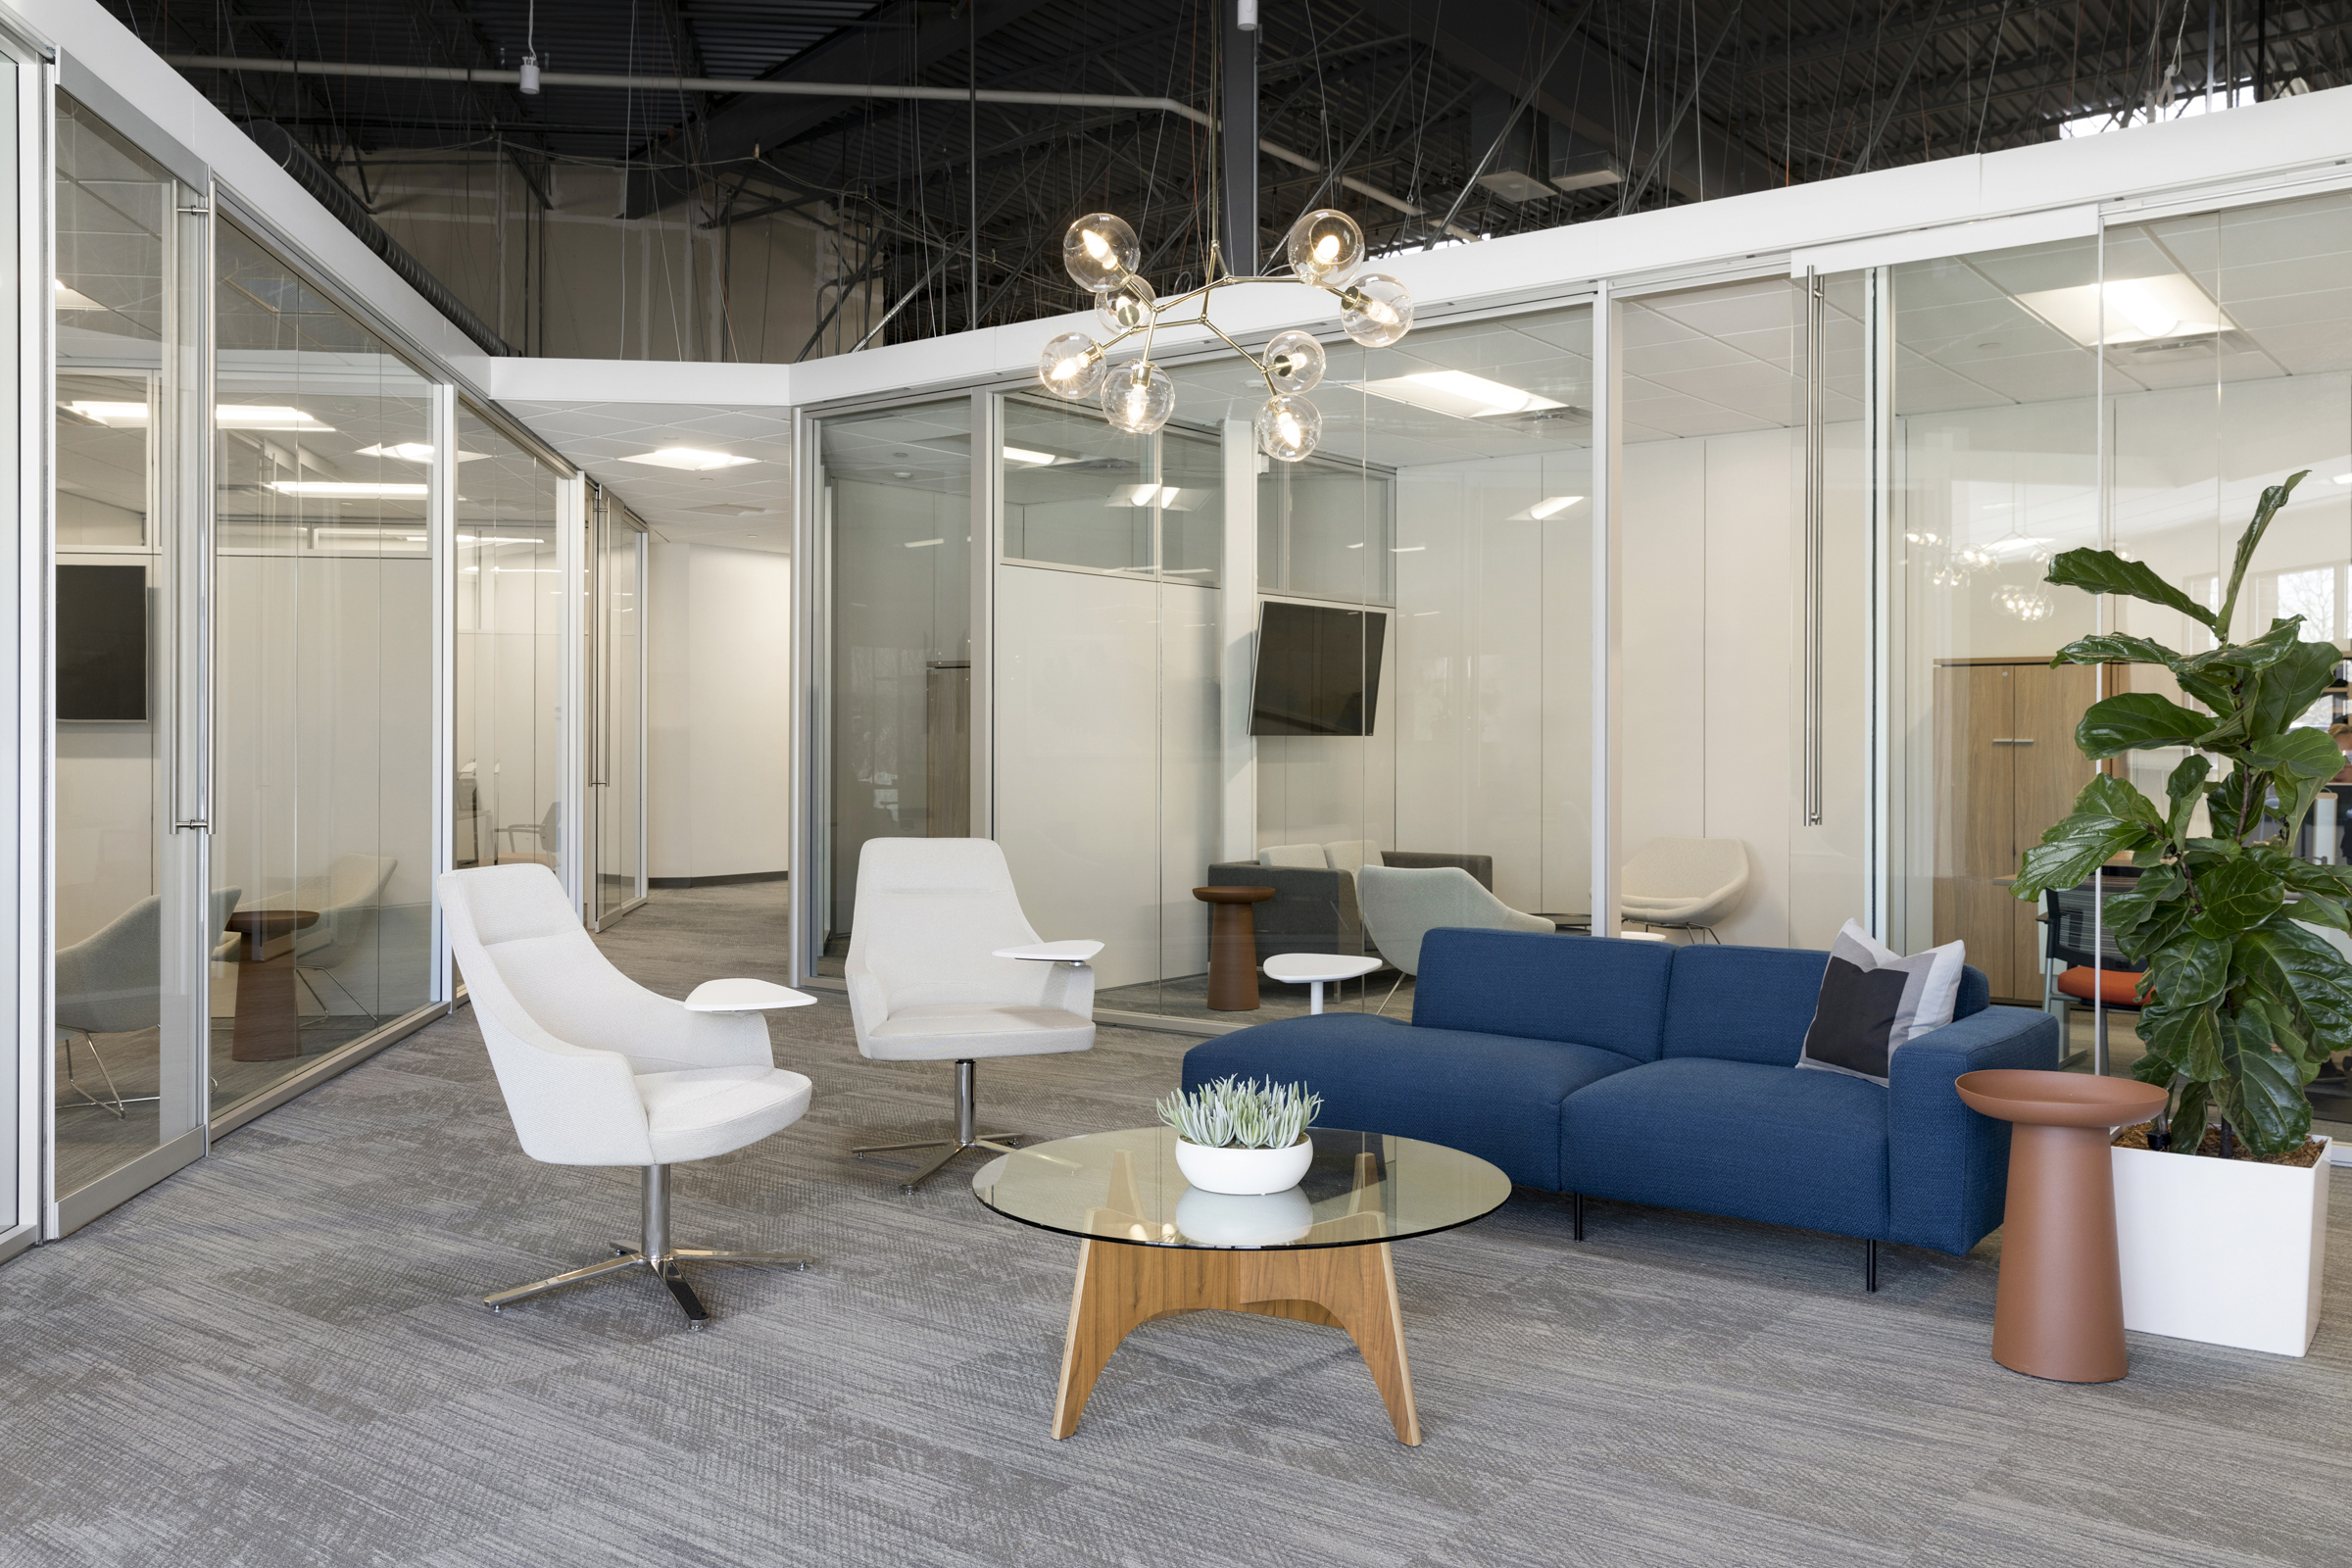 Surrounded by glass-enclosed offices and work areas, this shared lounge seating area provides space for collaboration while still feeling connected to the rest of the employees. / Design by Vela Creative